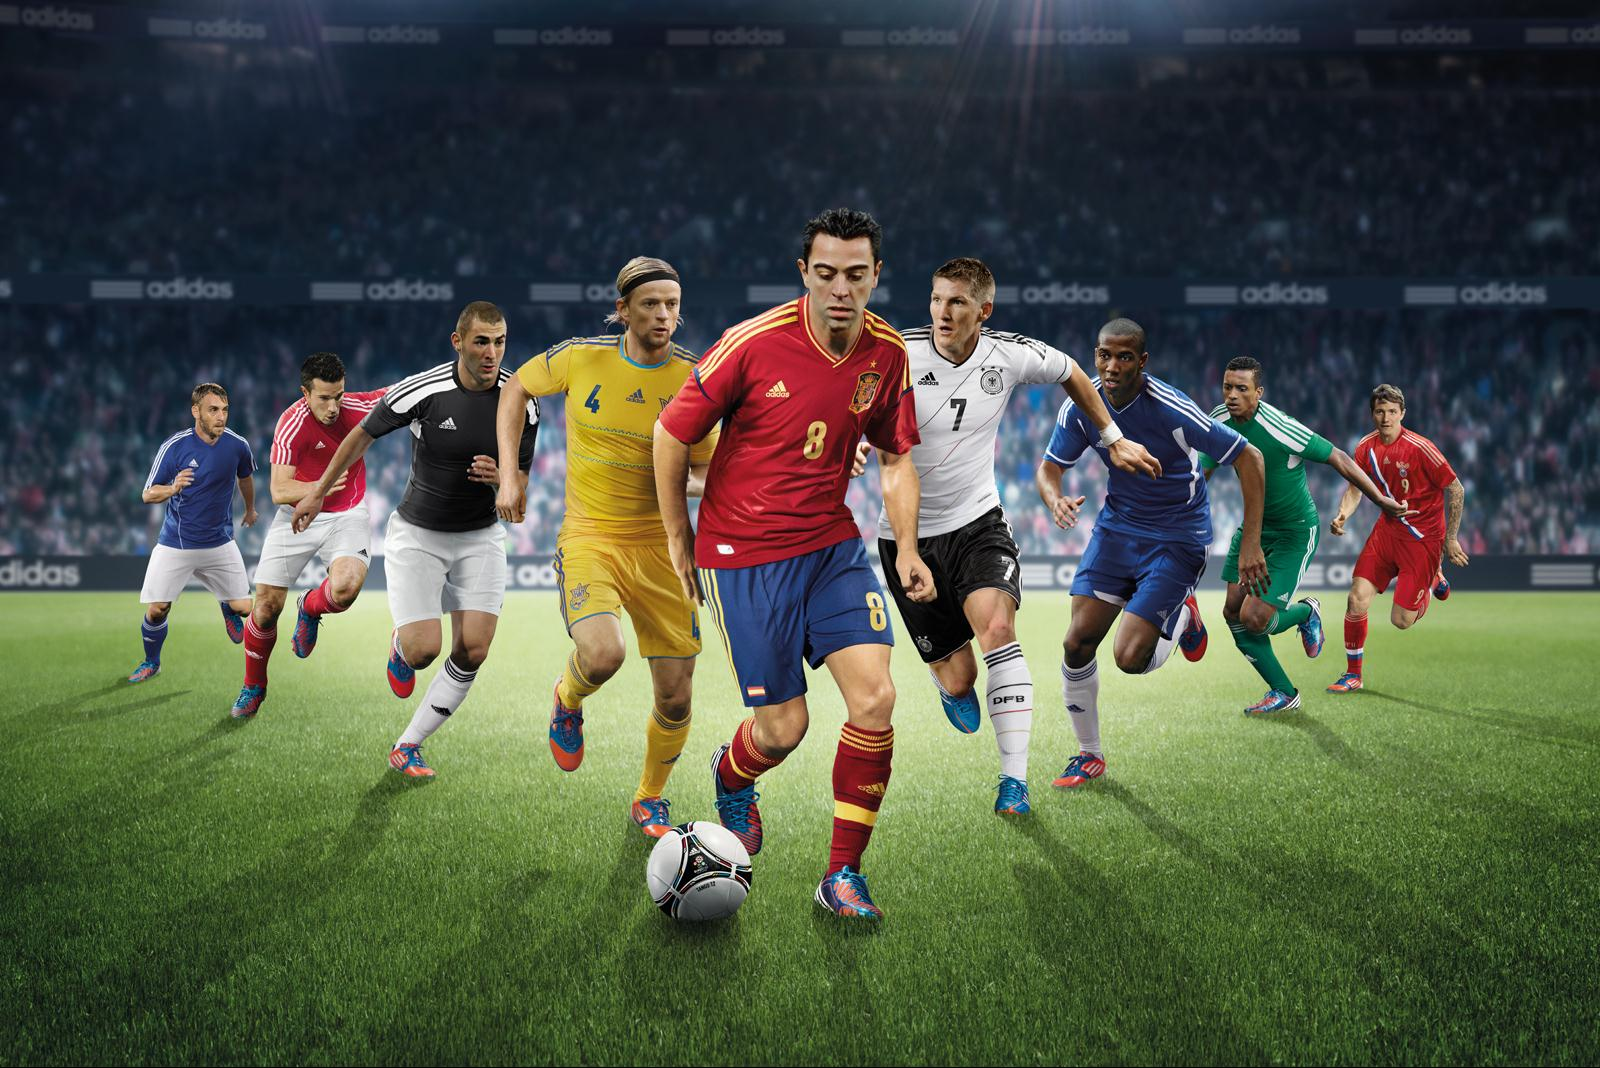 Football Wallpapers Free Download HD New Latest Sports